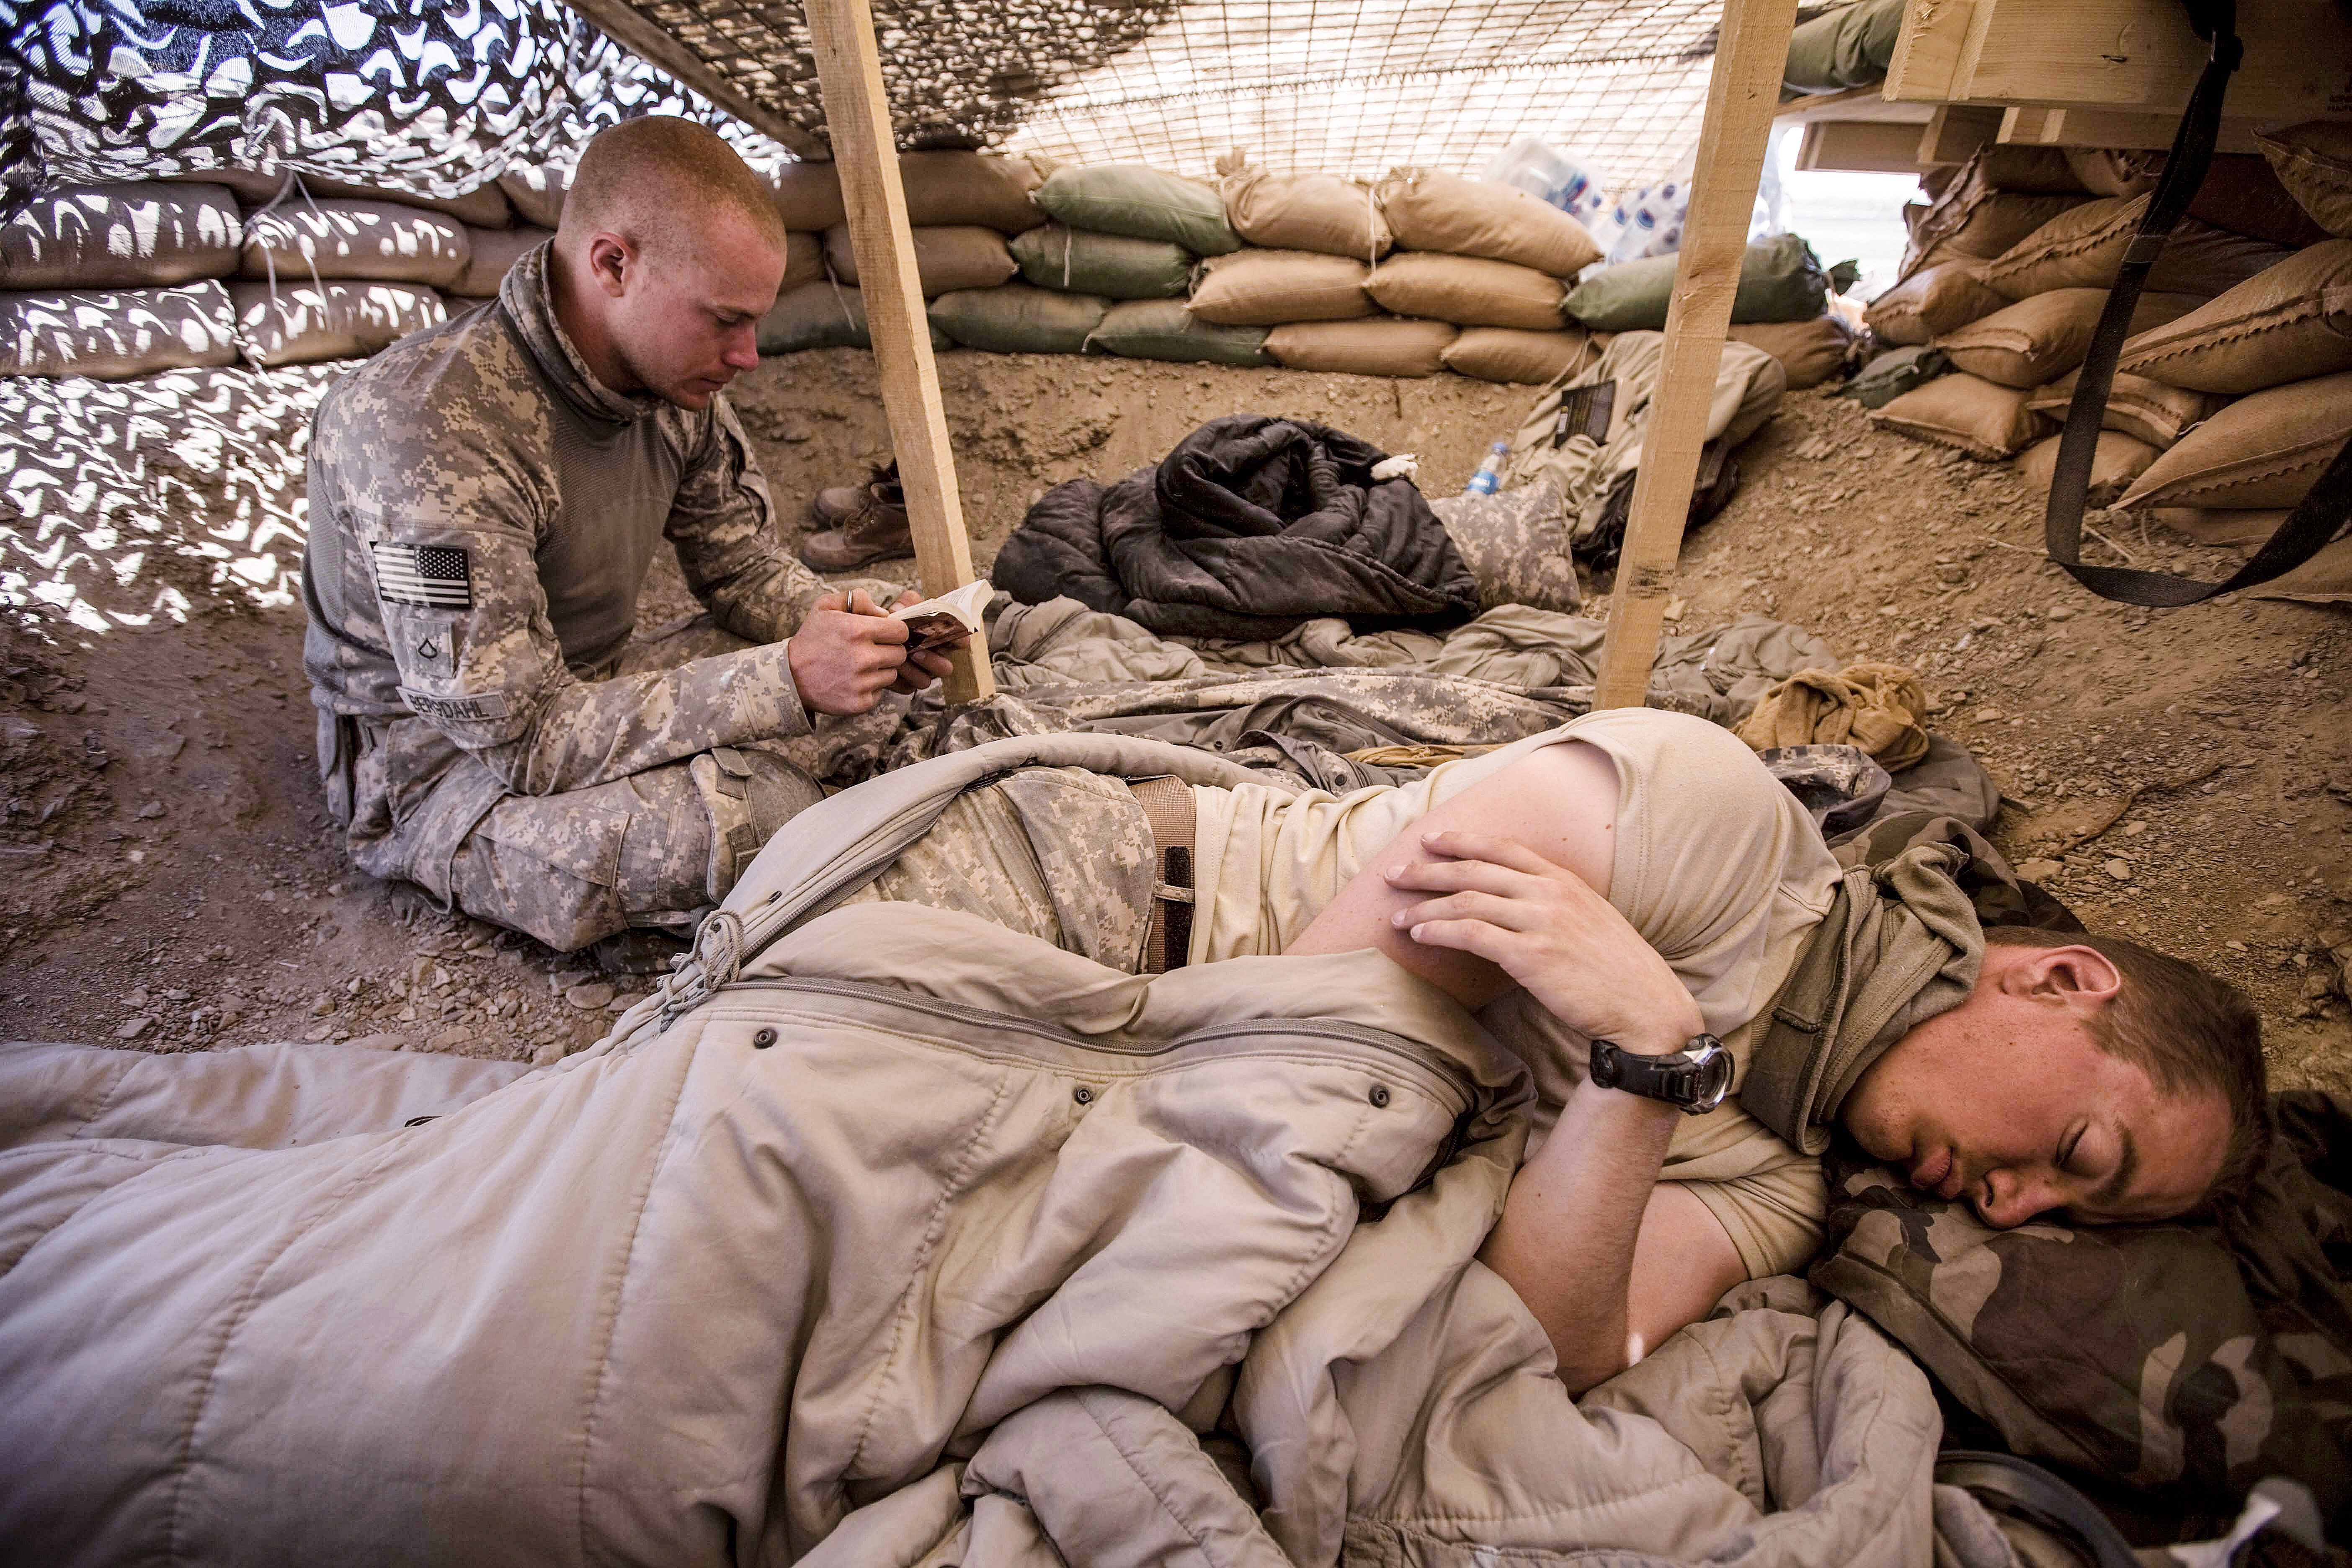 Guardian photographer Sean Smith spent several days with US army sergeant Bowe Bergdahl in southern Afghanistan shortly before he went missing in 2009.